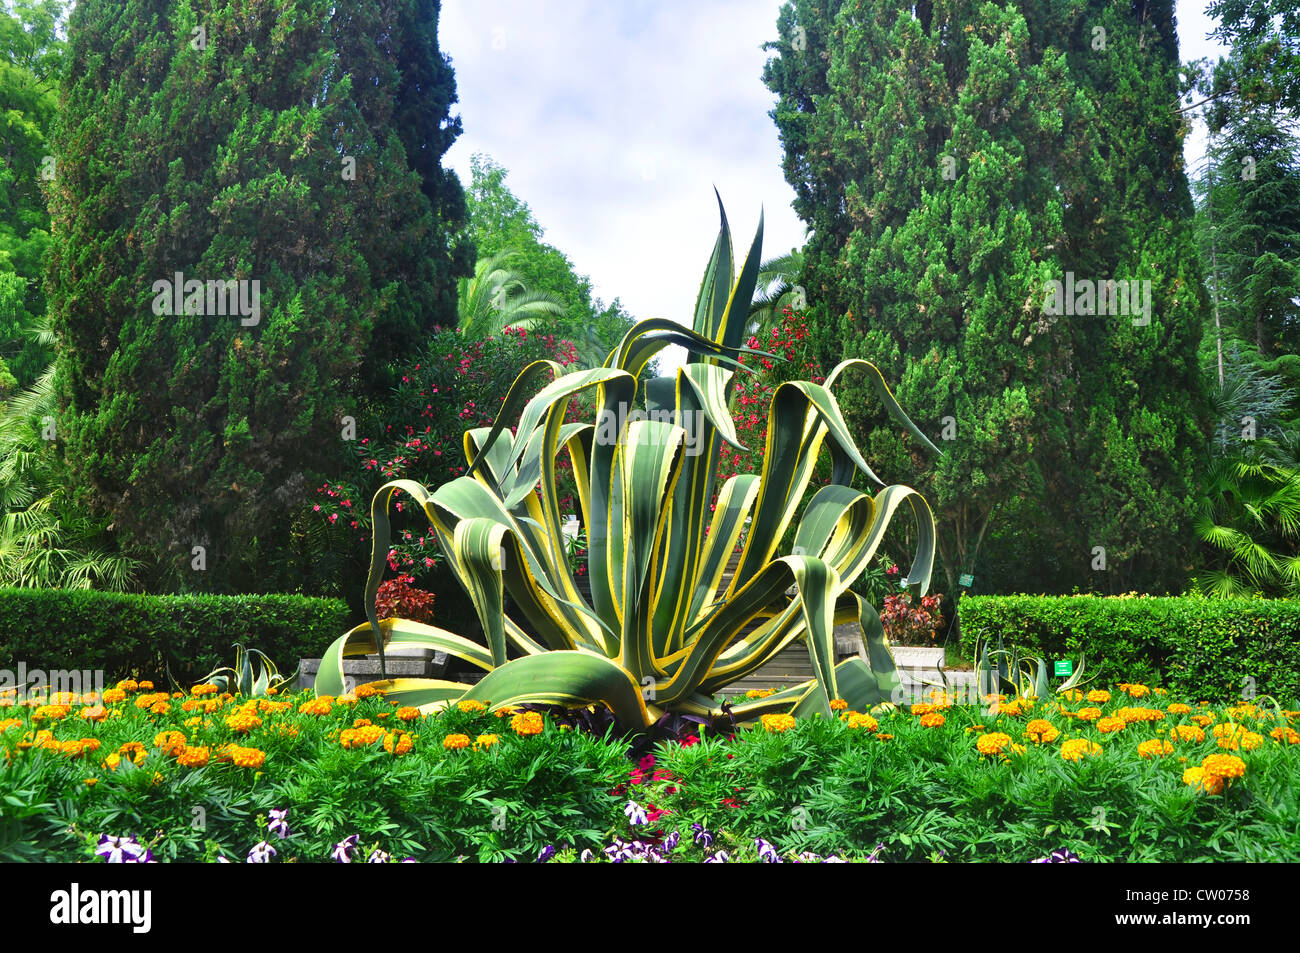 Agave and marigolds in Sochi Arboretum - Stock Image